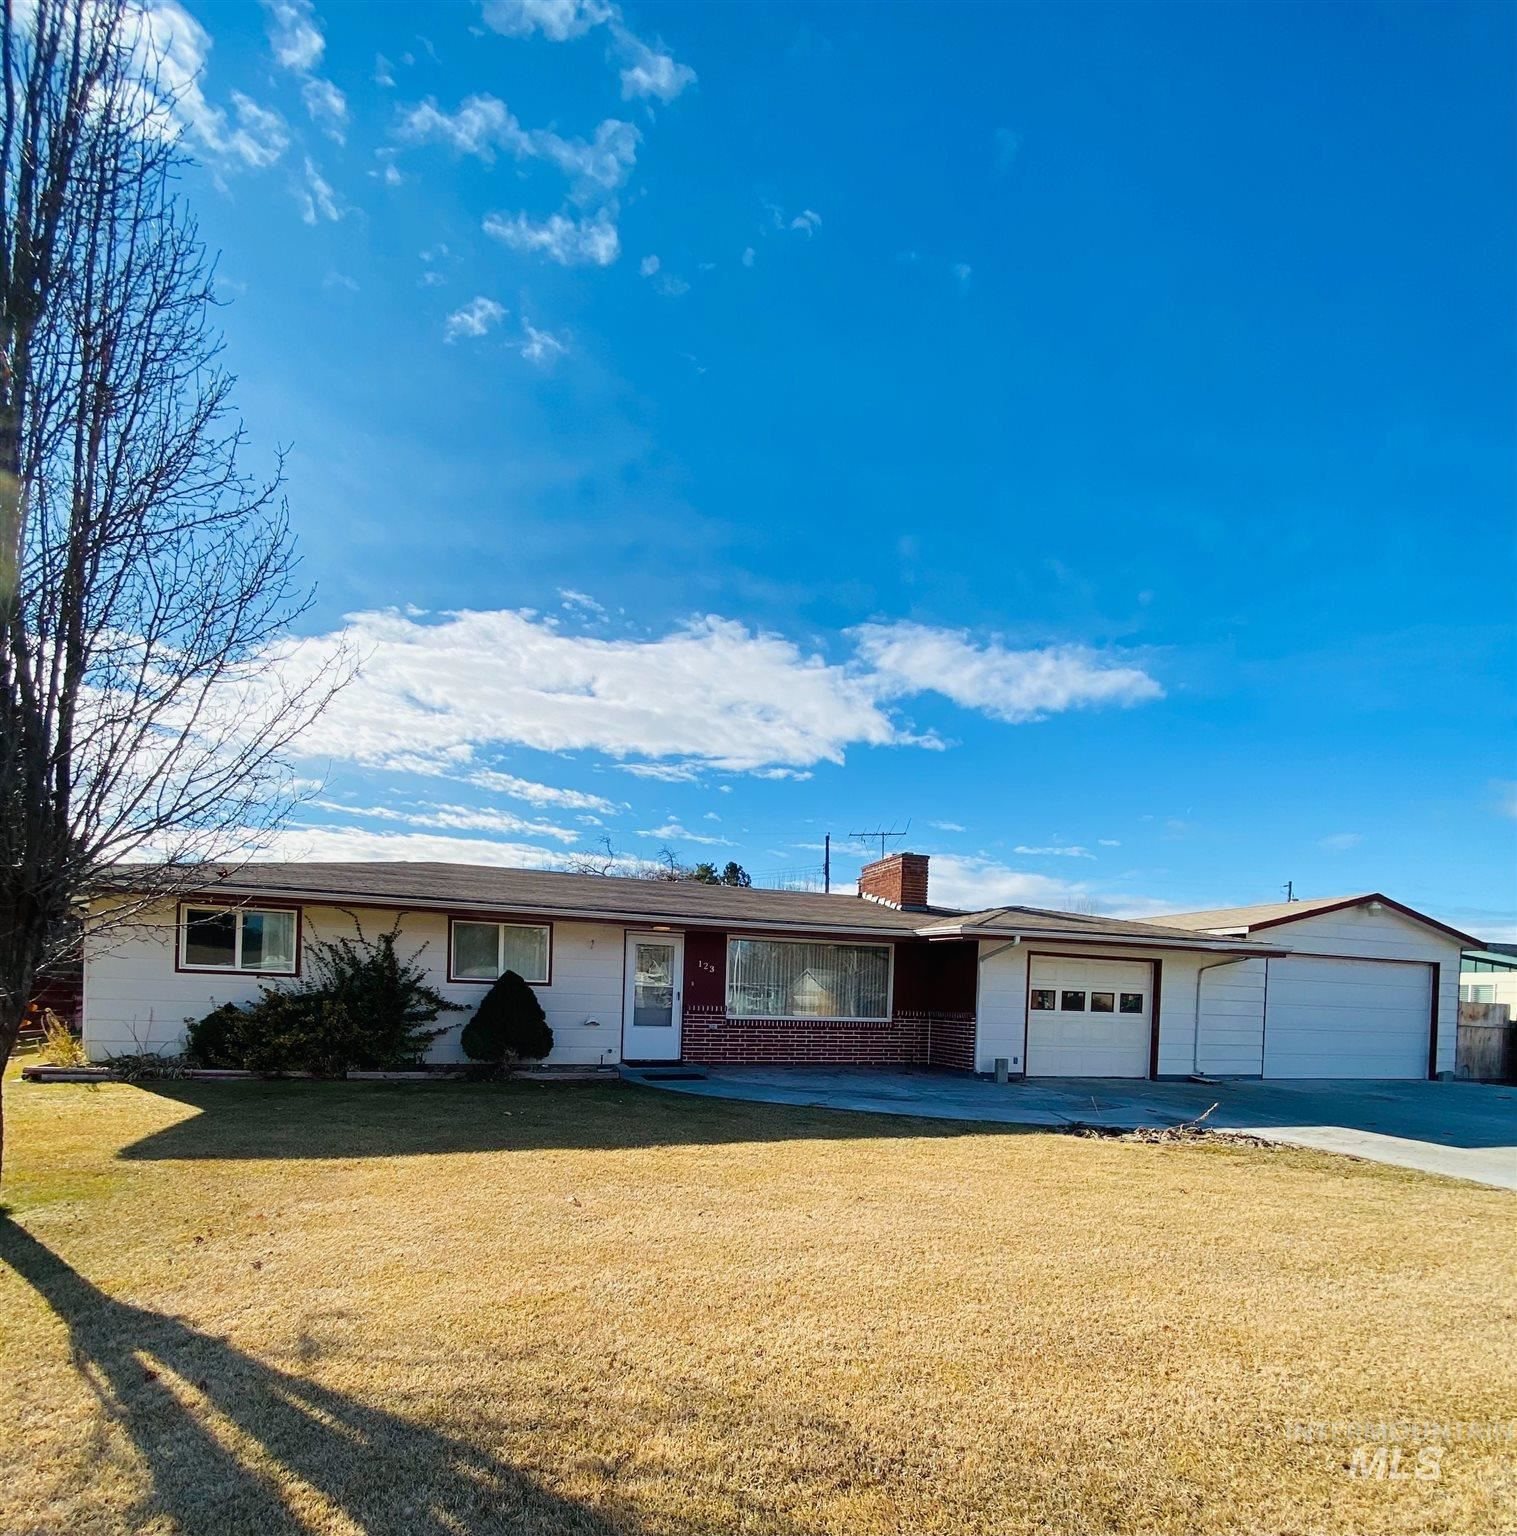 Photo of 123 W McKinley, New Plymouth, ID 83655 (MLS # 98792992)